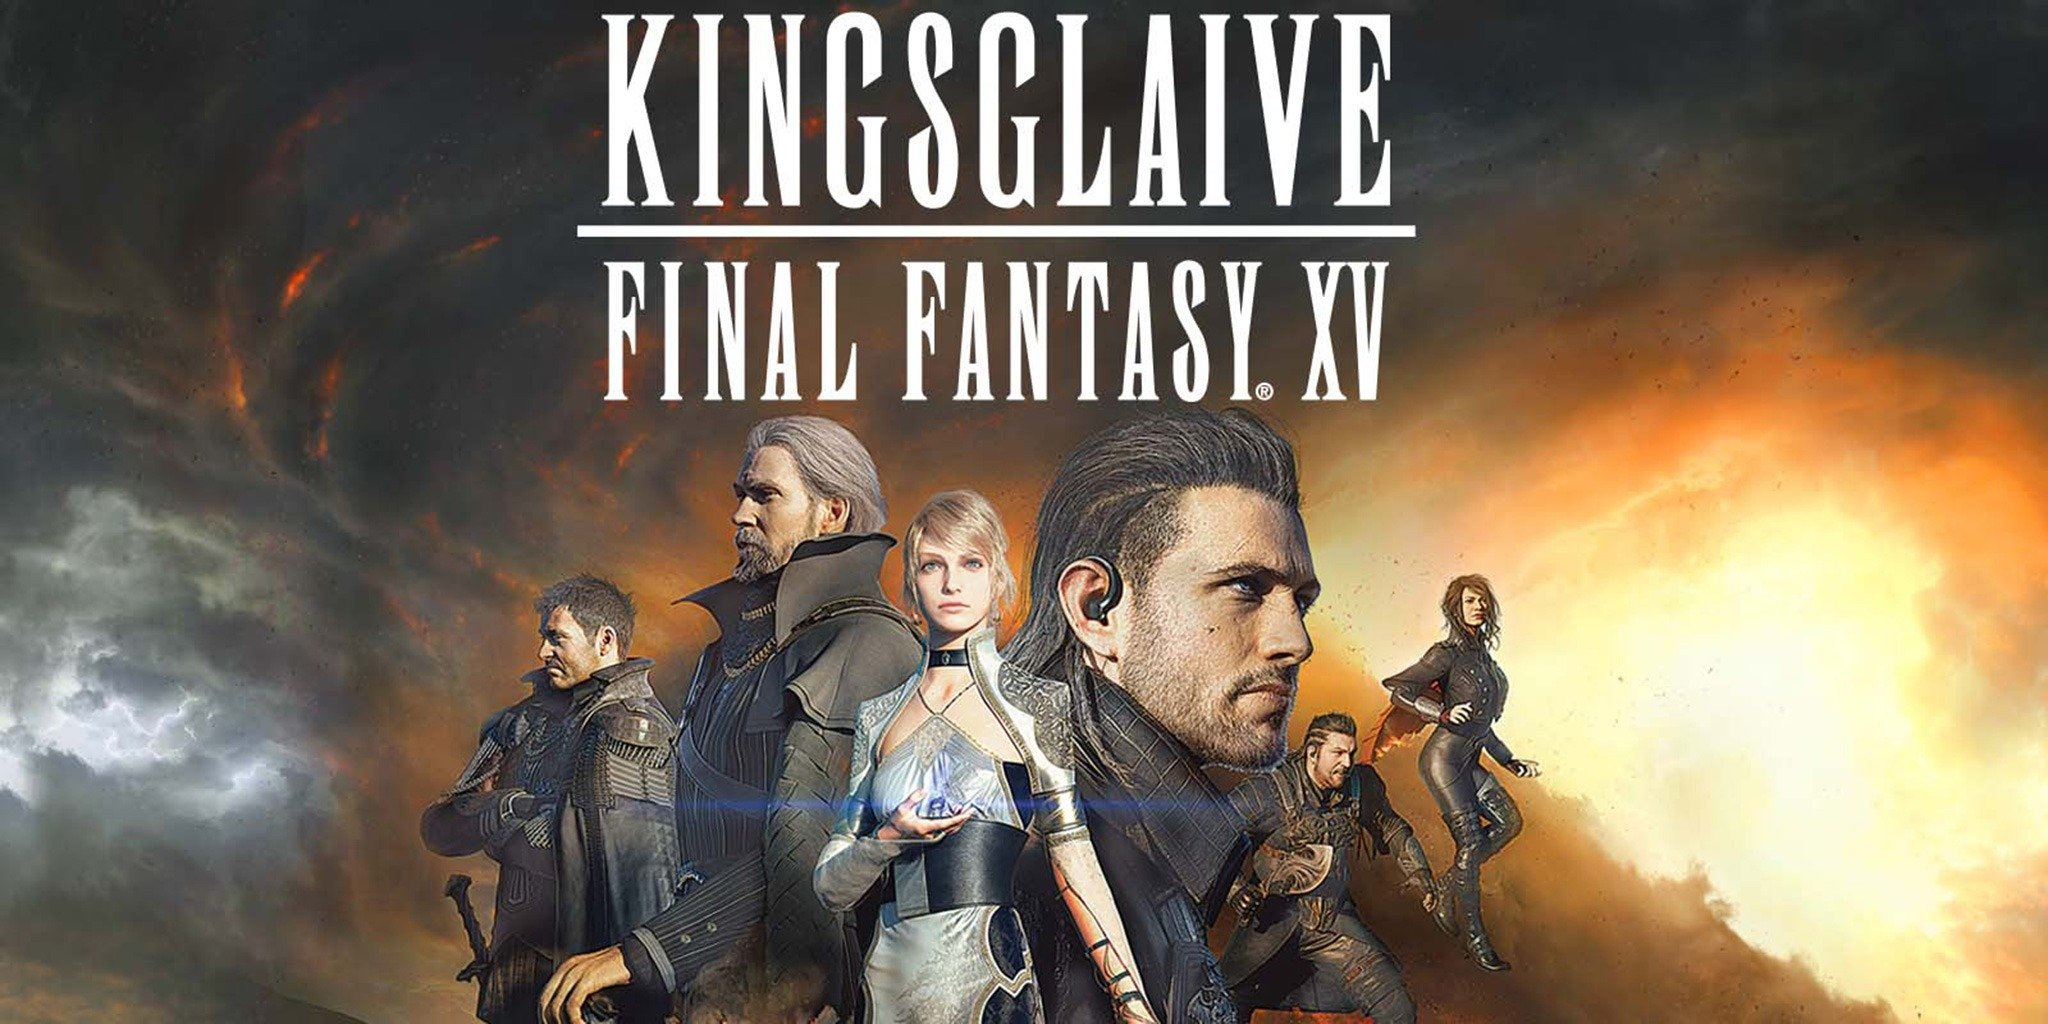 kingsglaive-final-fantasy-xv_animation-movies